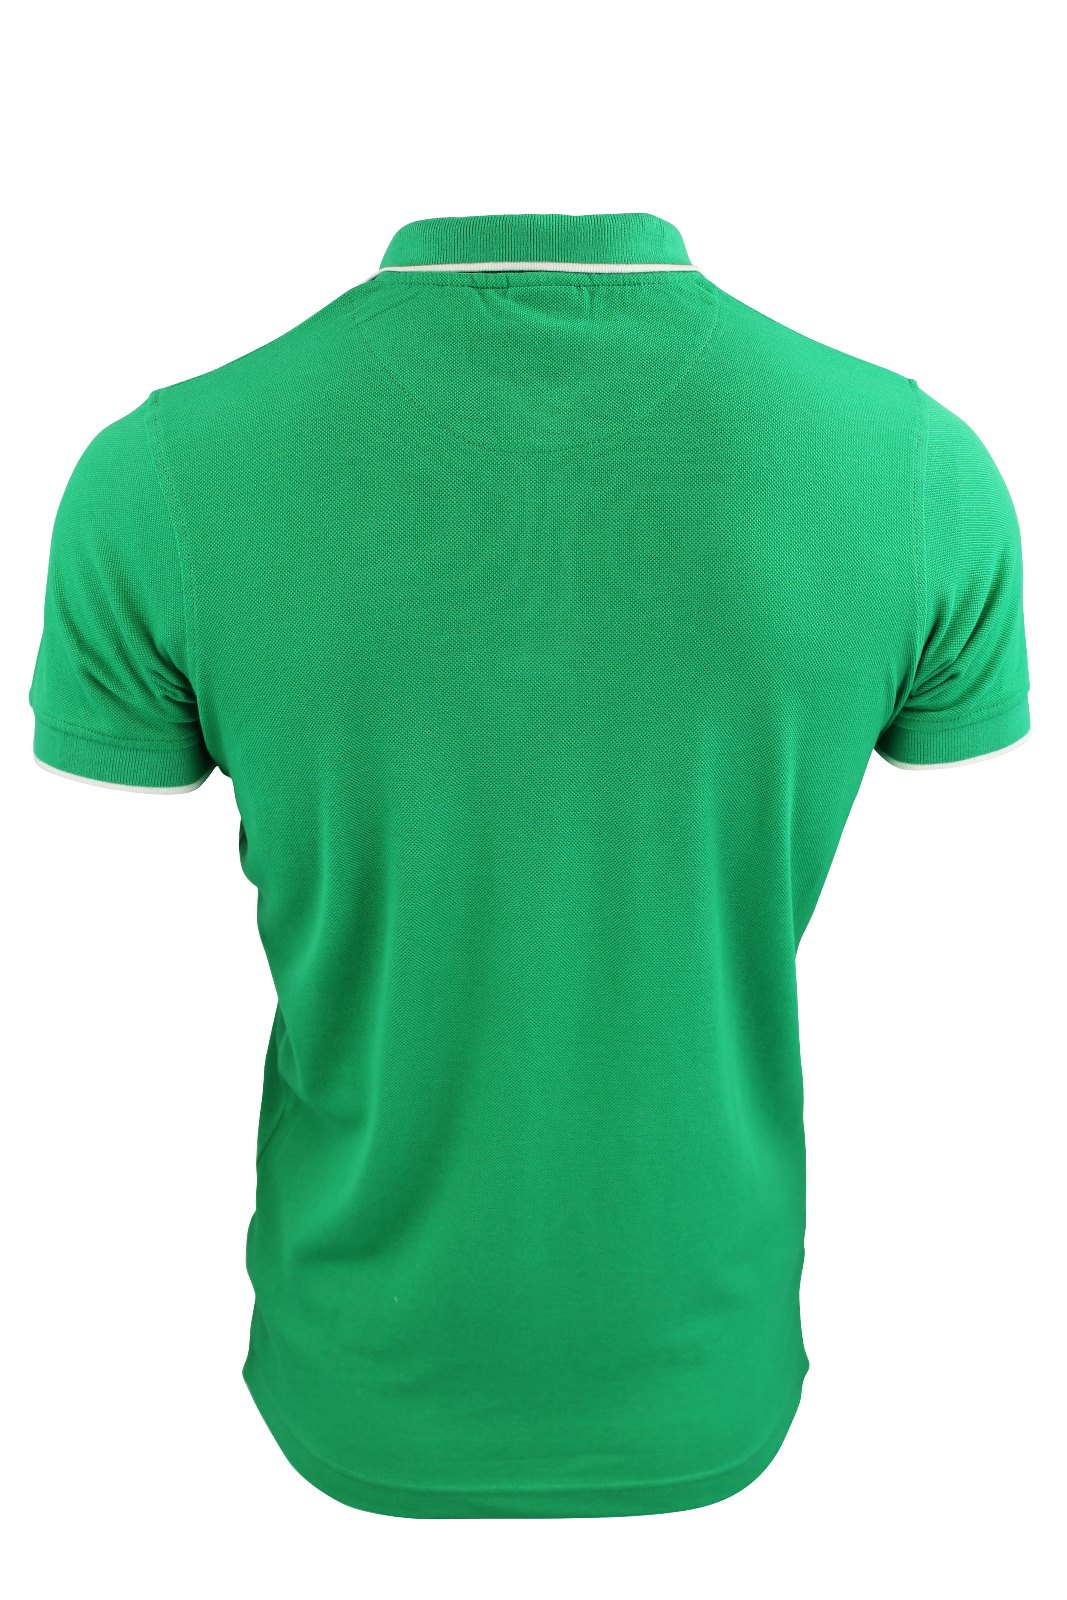 Mens crosshatch tipped plain pique polo t shirt 39 raymo for Plain t shirts to print on